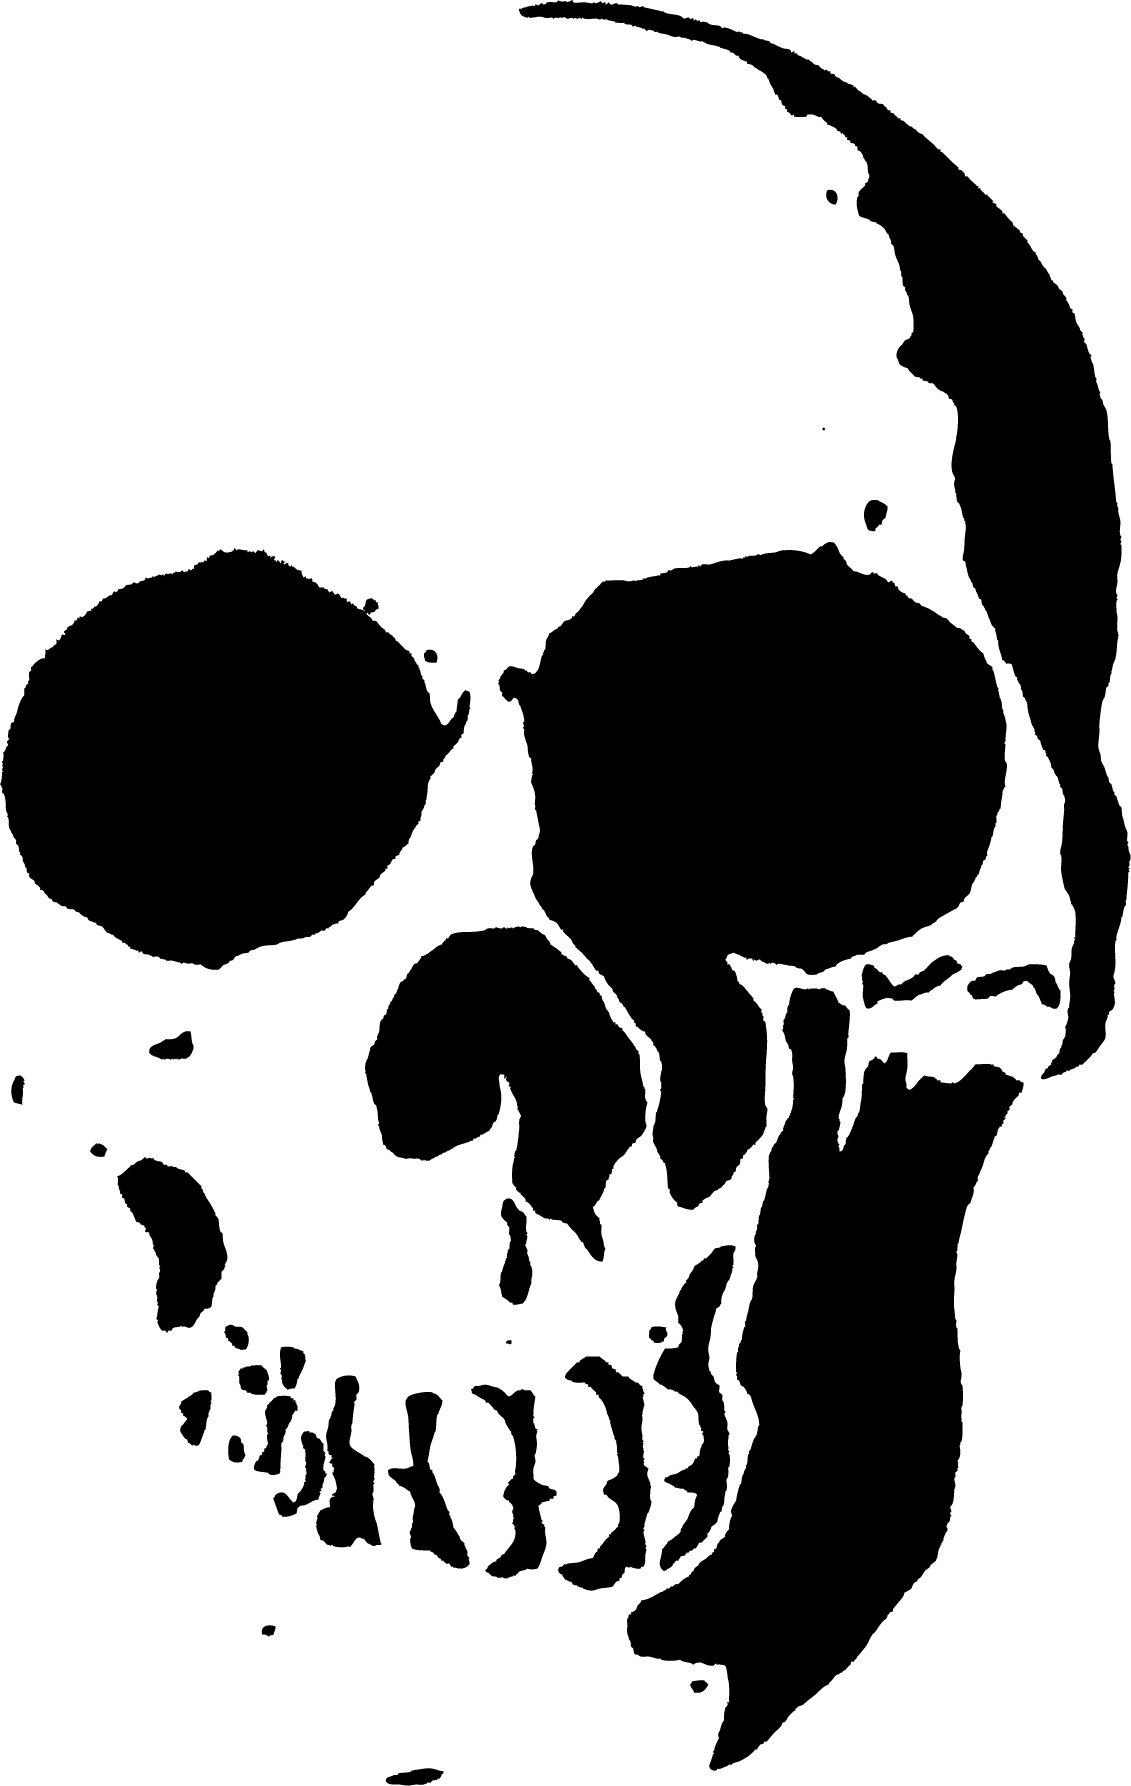 23 Free Skull Stencil Printable Templates | Guide Patterns - Free Printable Airbrush Stencils